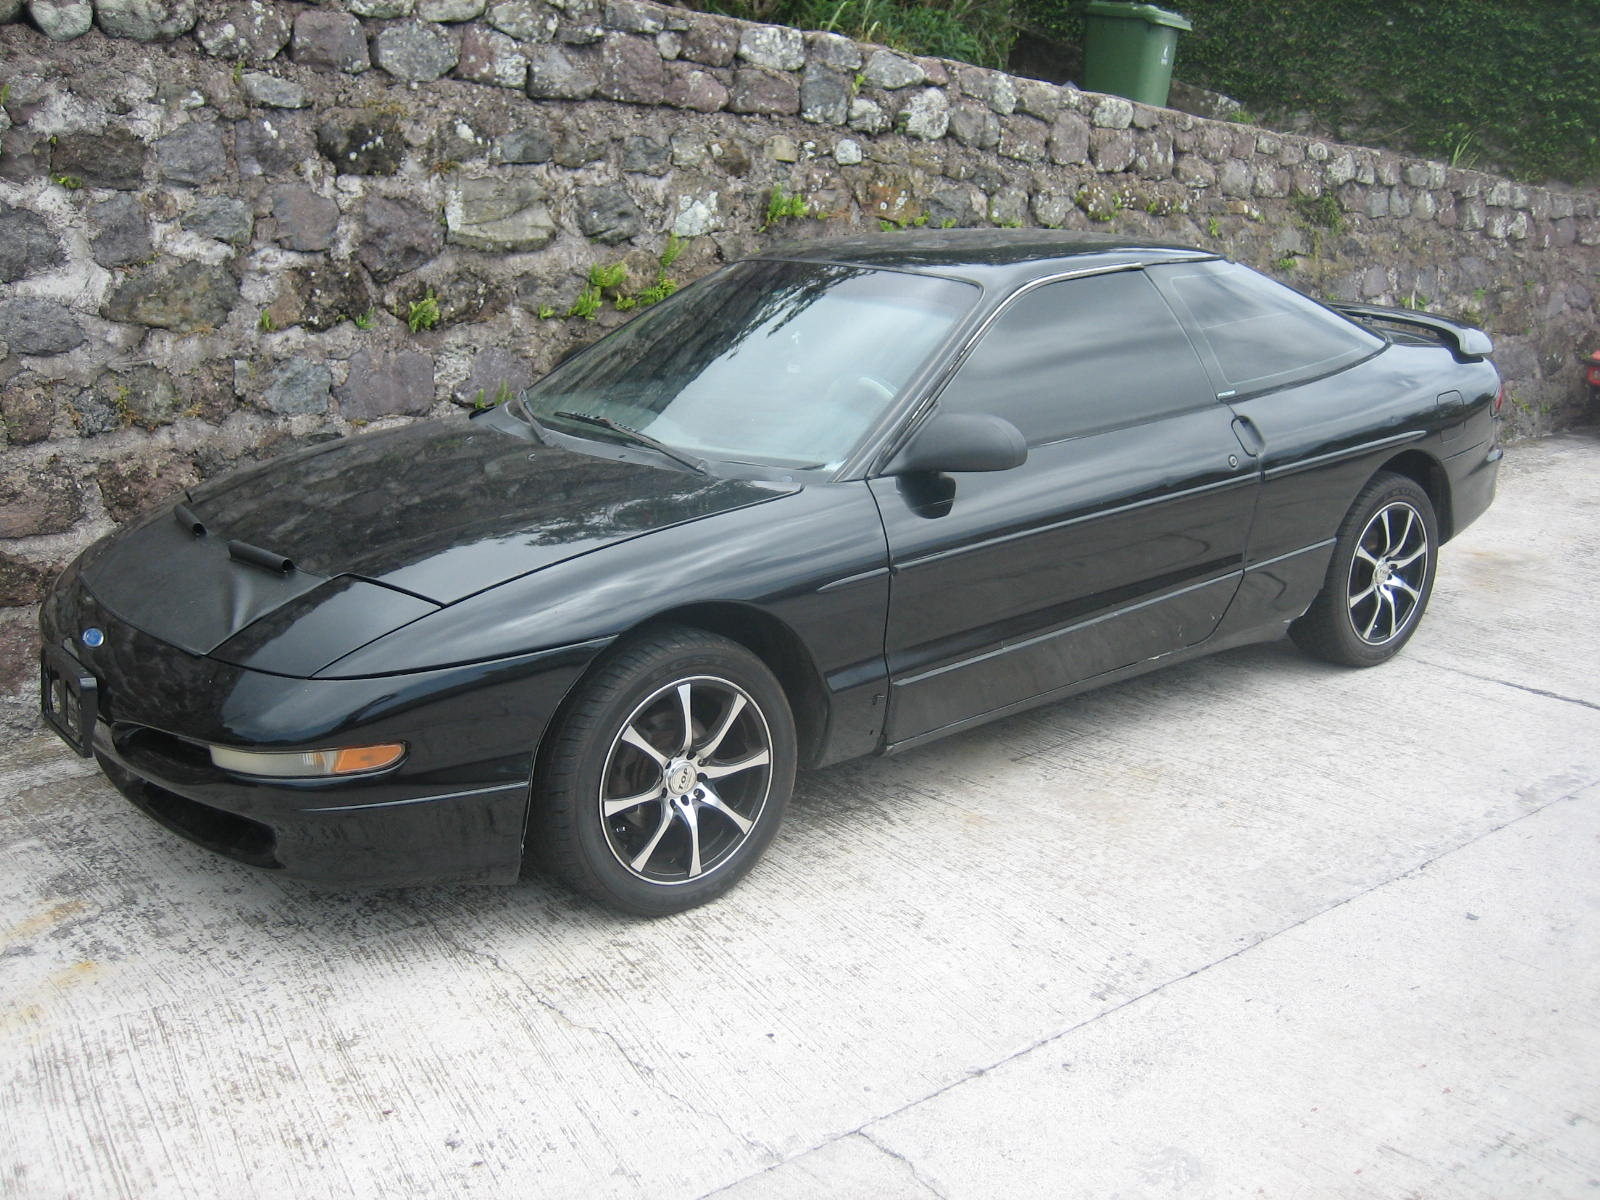 Ford probe for sale img 0002 jpg